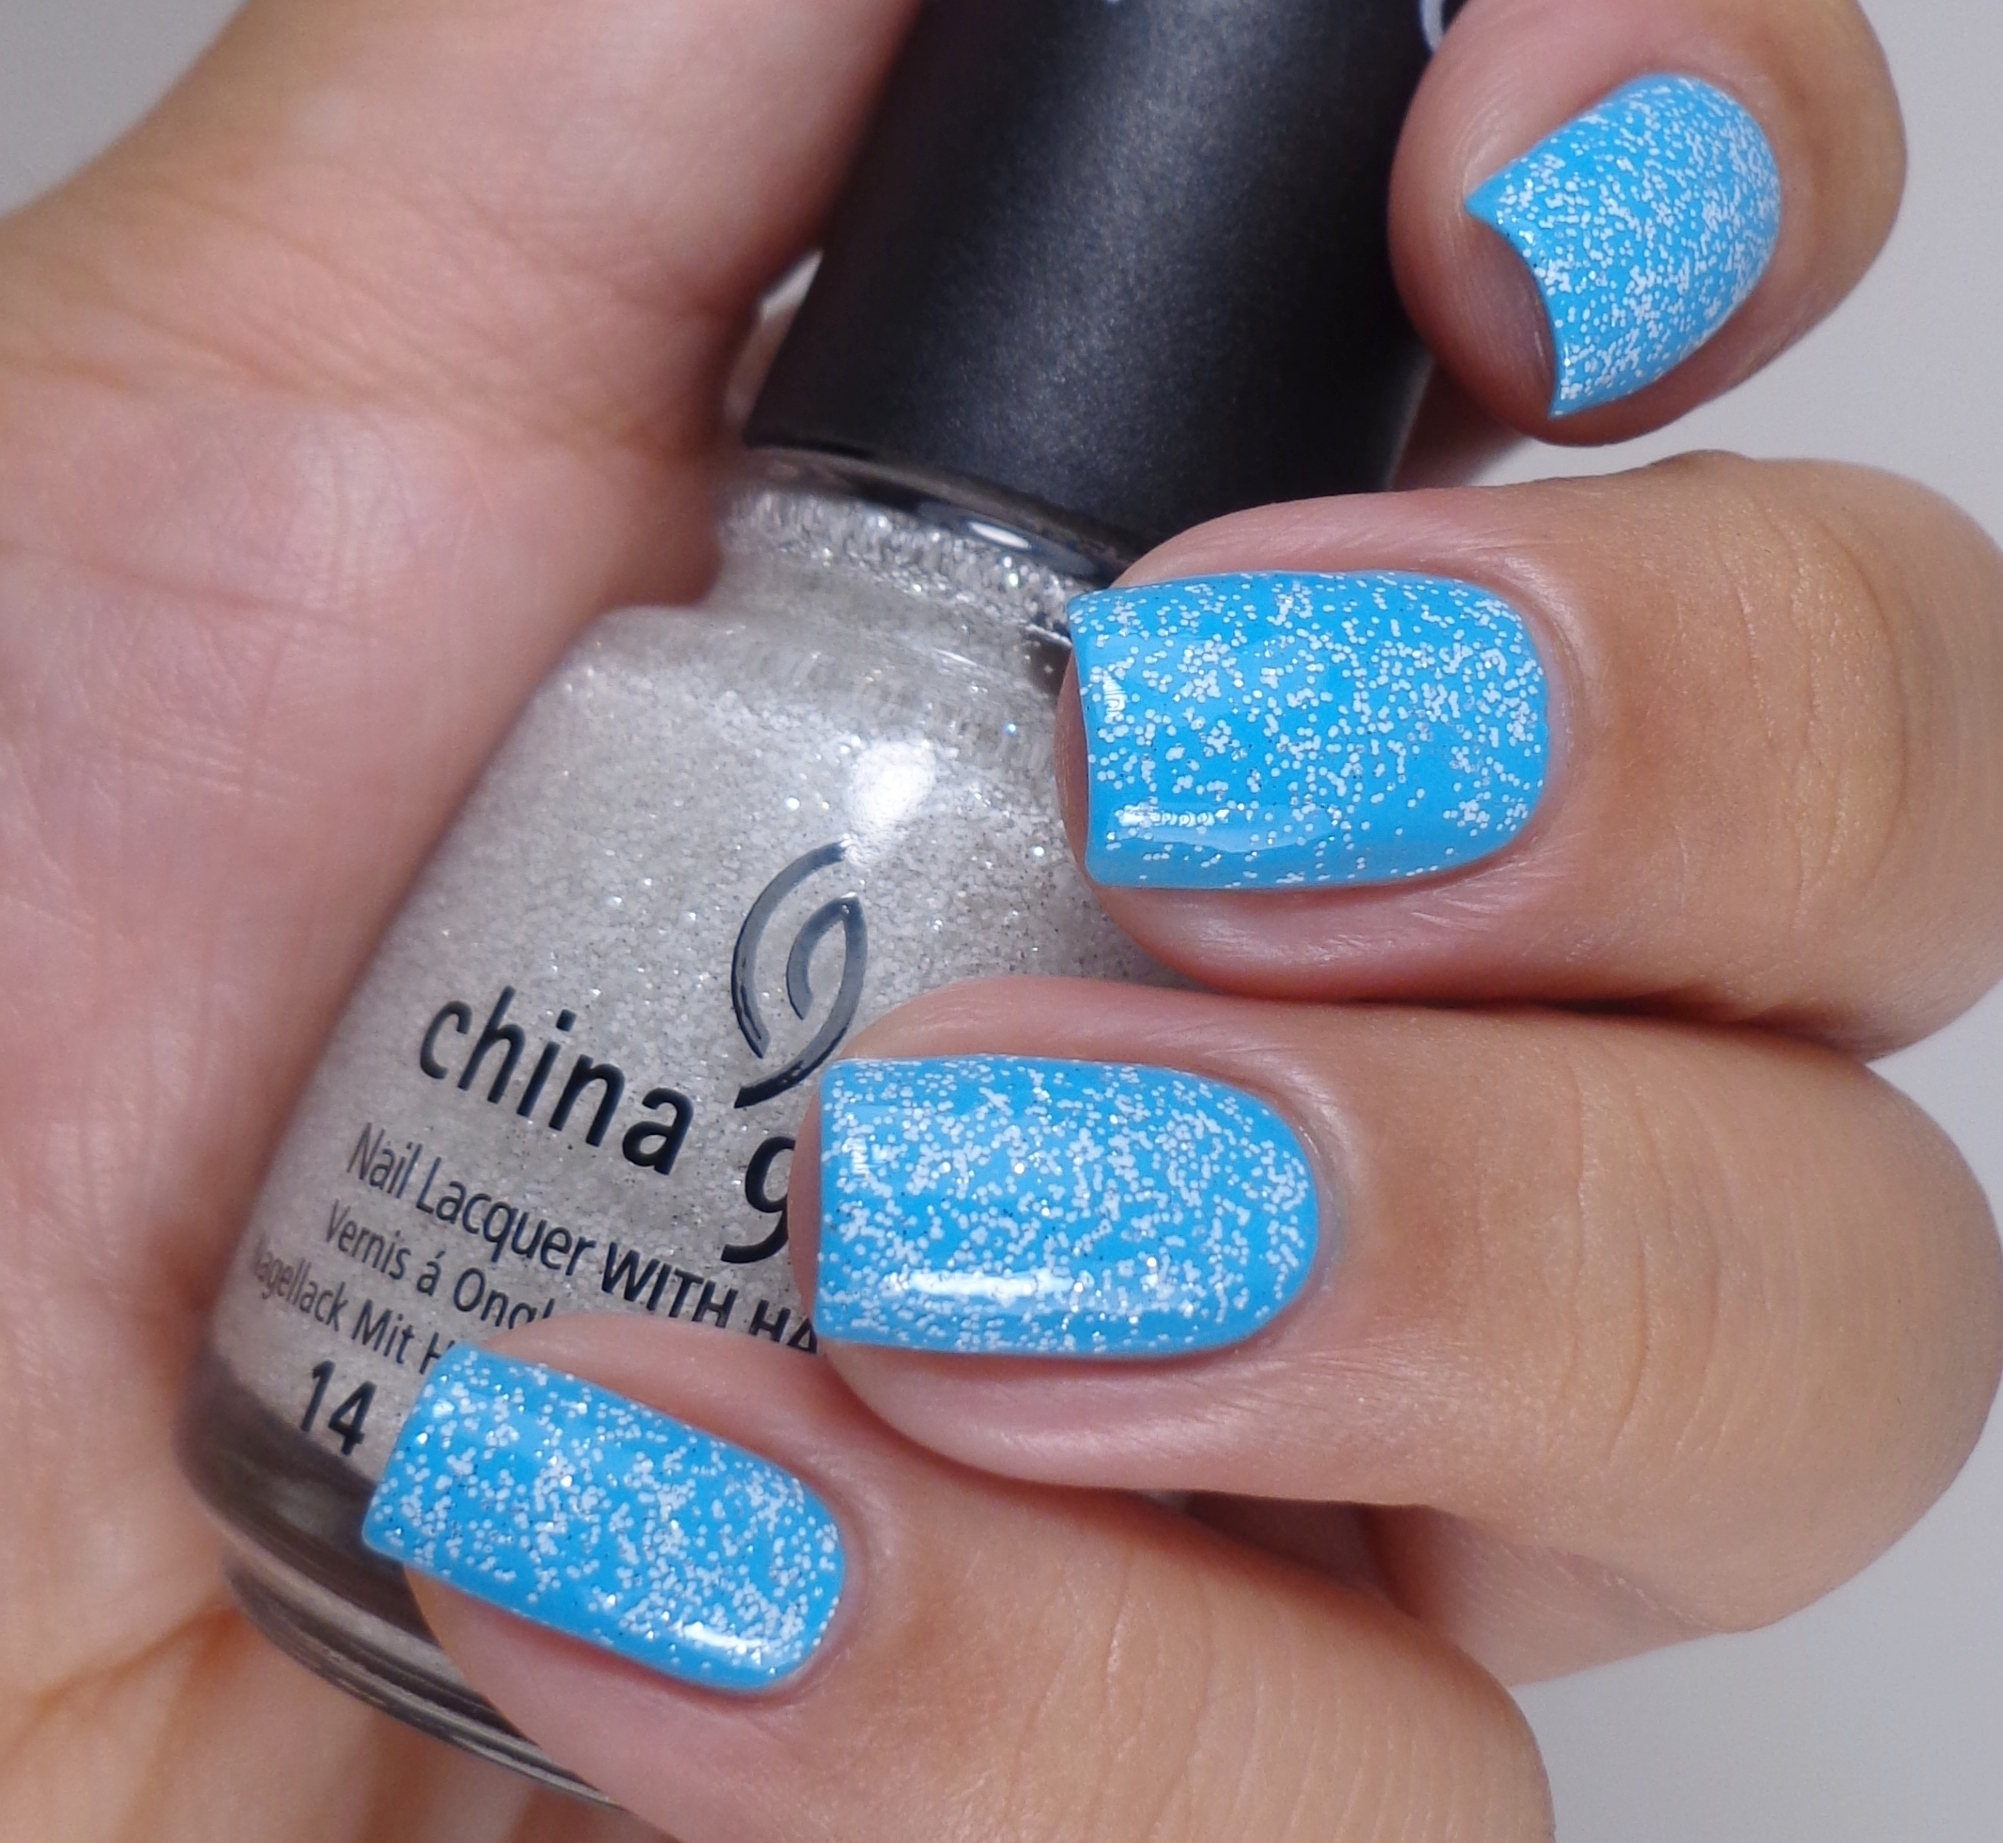 China Glaze The Outer Edge 2